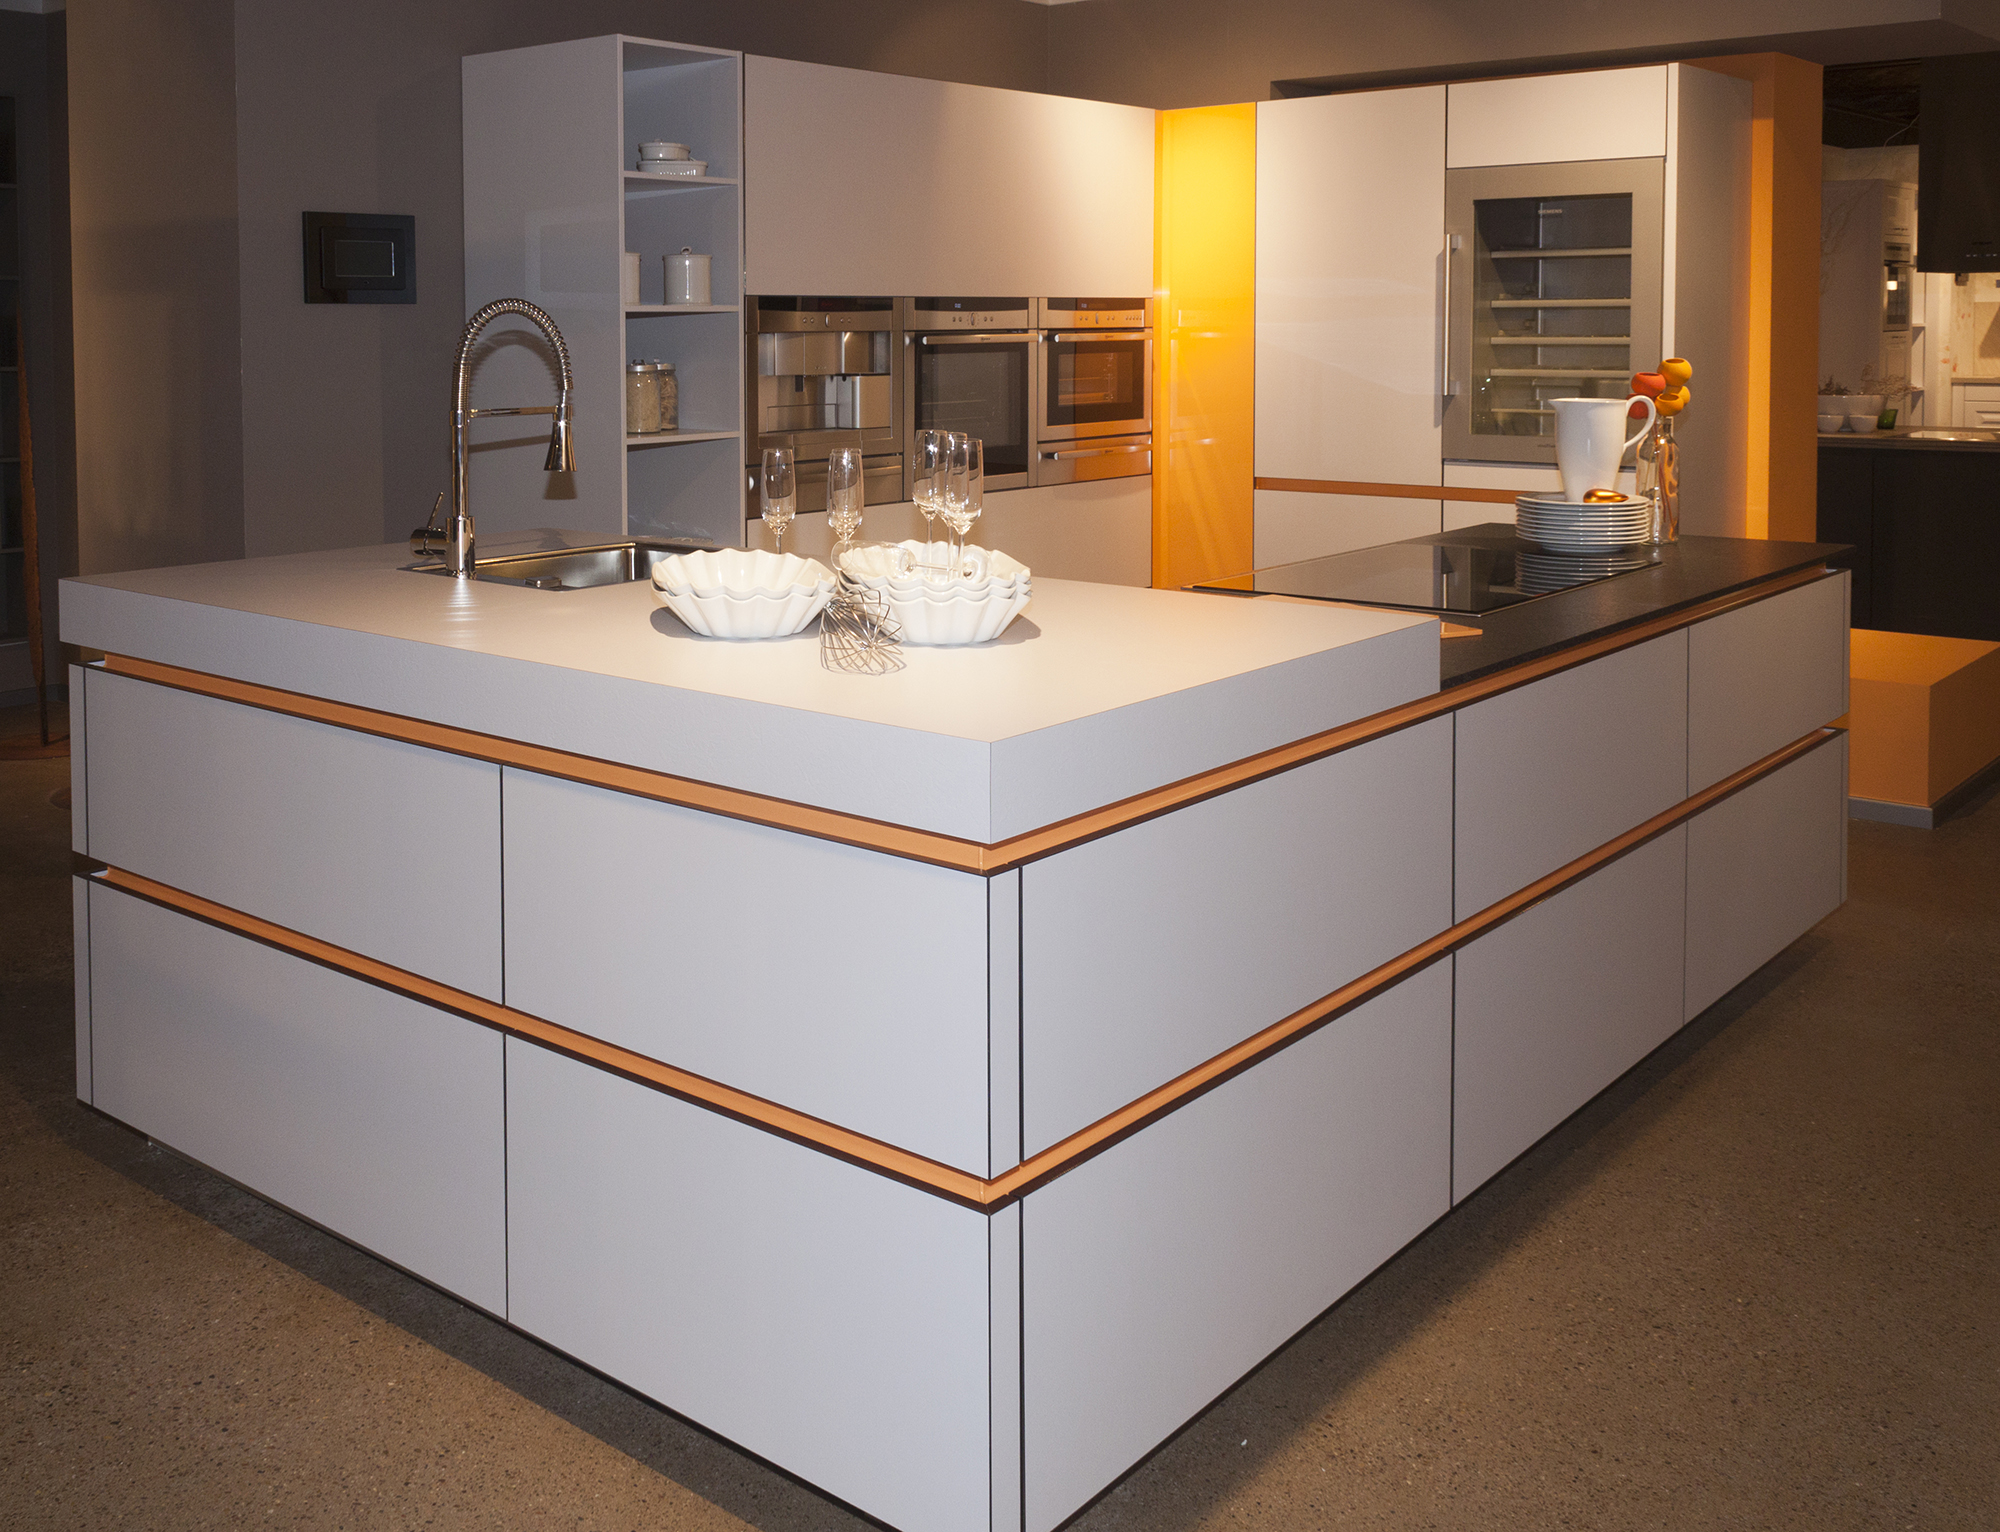 White gloss and orange modern kitchen with island bar